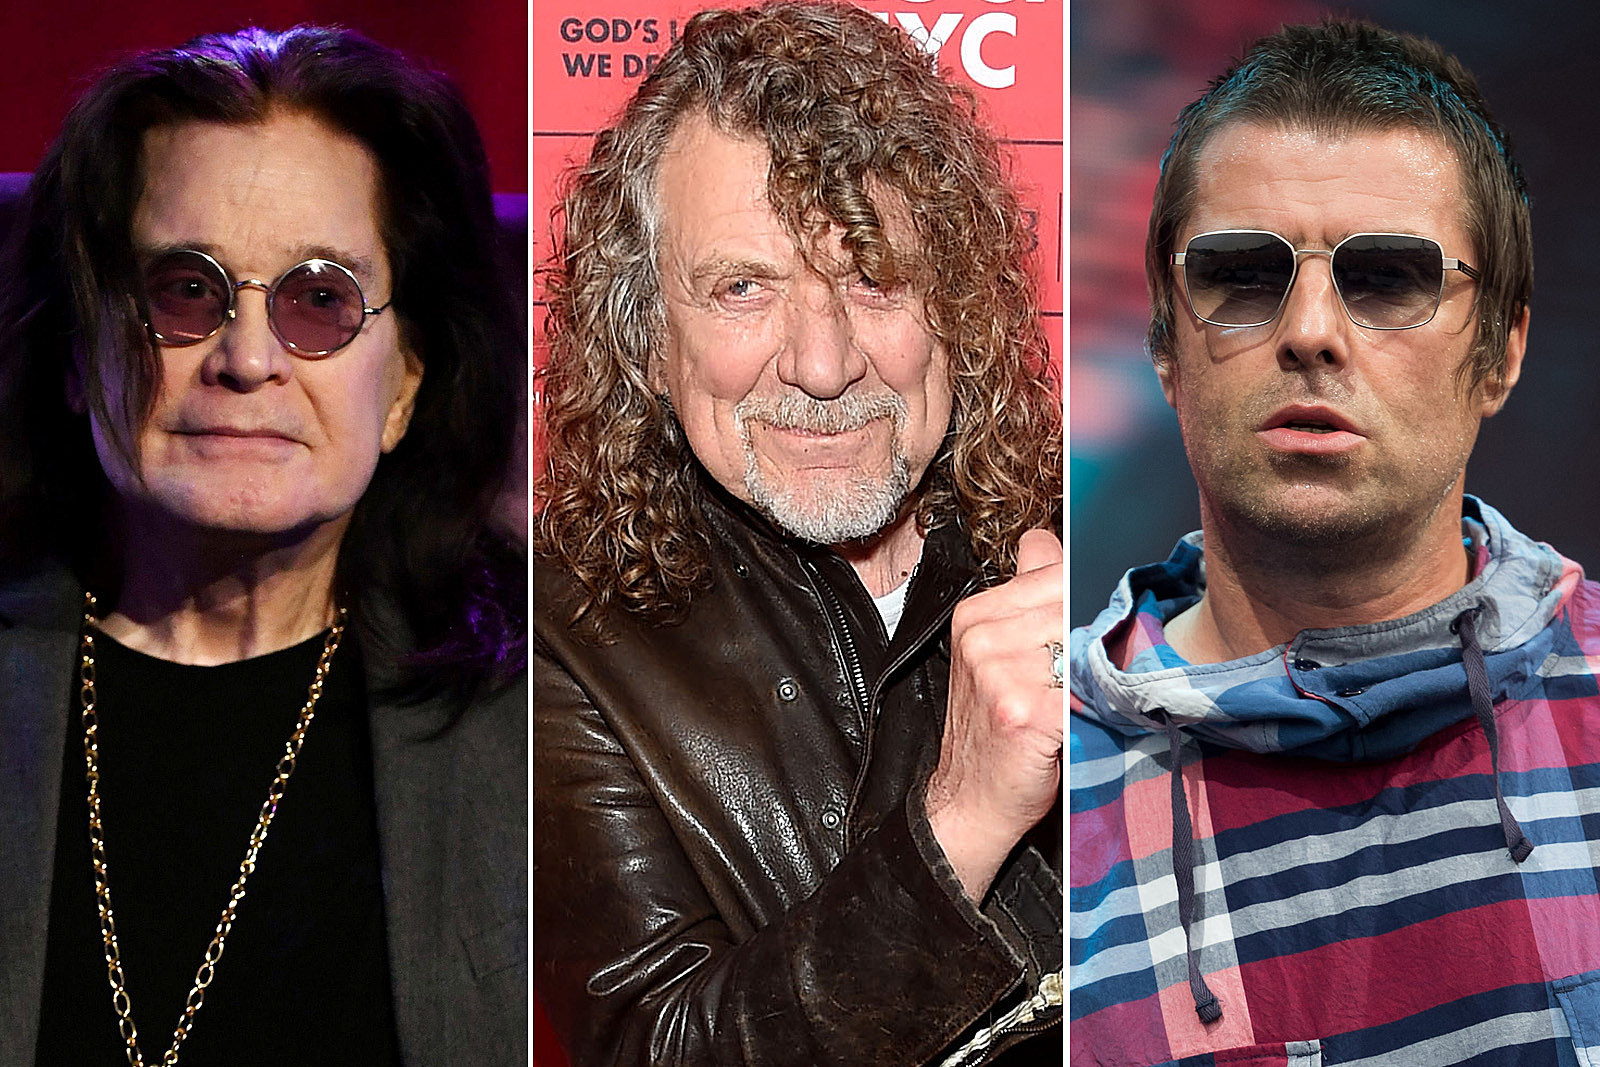 Ozzy Osbourne, Robert Plant and Oasis in Rockfield Studio Film